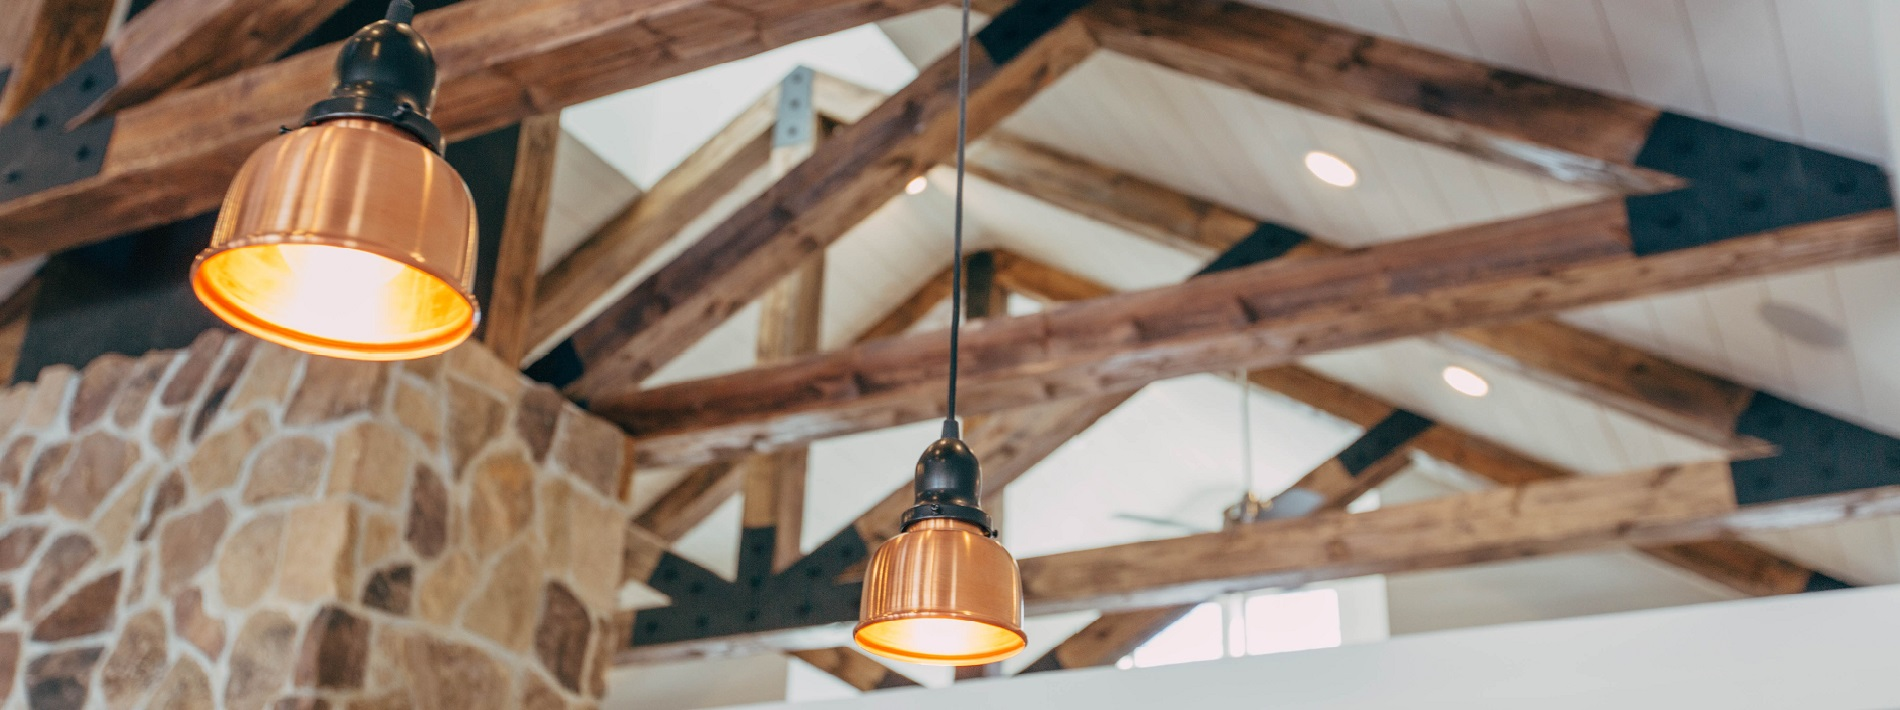 Home Light Fixtures | Indoor u0026 Outdoor Lighting | Raleigh Apex CORE Remodeling Group Inc. & Home Light Fixtures | Indoor u0026 Outdoor Lighting | Raleigh Apex CORE ...